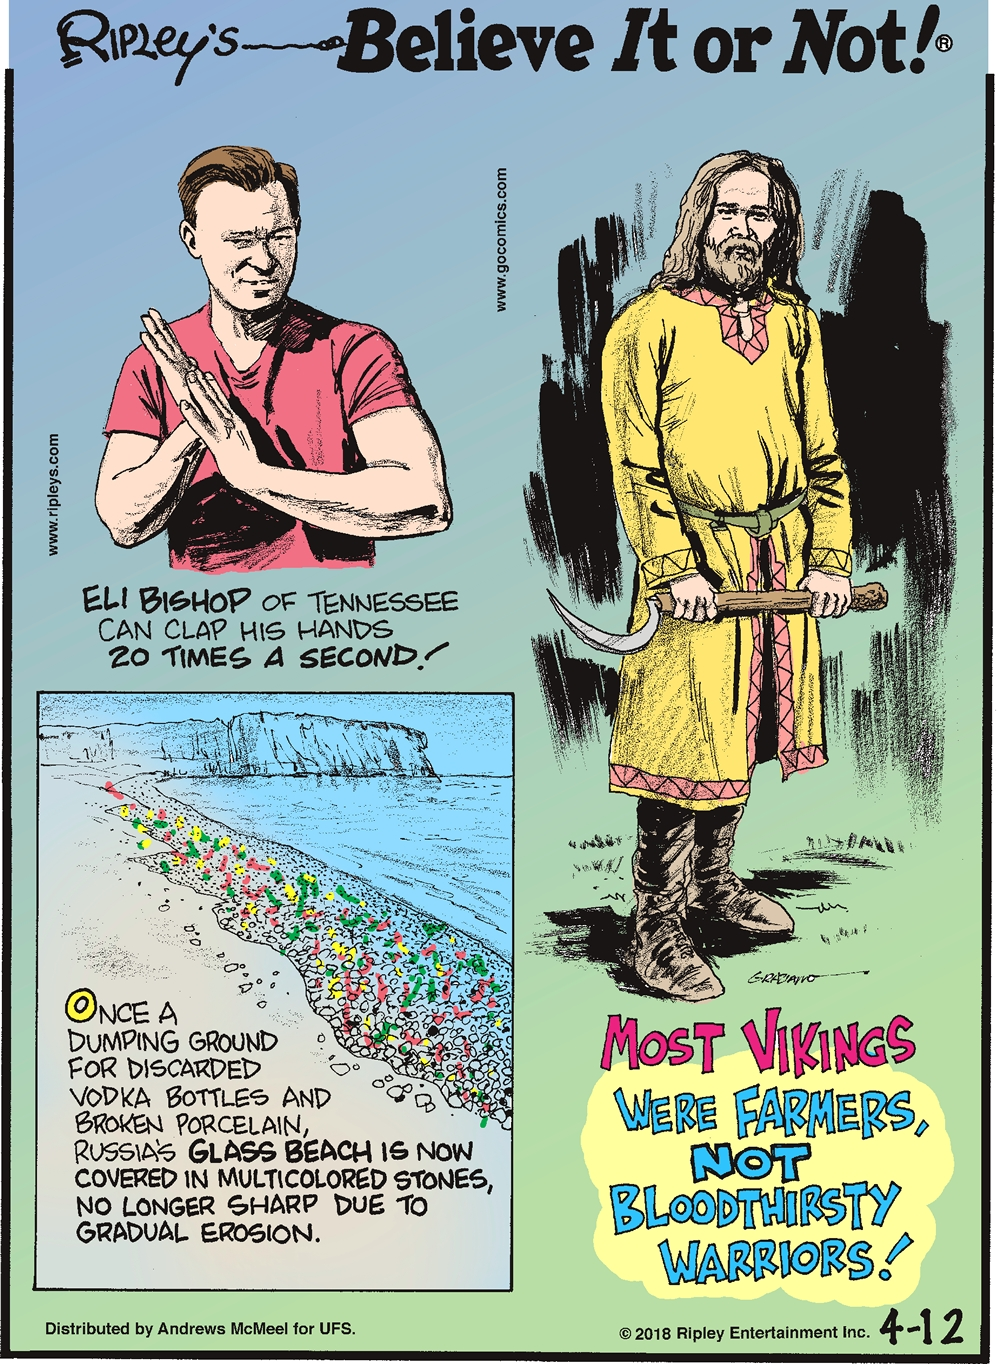 Eli Bishop of Tennessee can clap his hands 20 times a second!----------------------- Once a dumping ground for discarded vodka bottles and broken porcelain, Russia's Glass Beach is now covered in multicolored stones, no longer sharp due to erosion.-------------------- Most vikings were farmers, not bloodthirsty warriors!